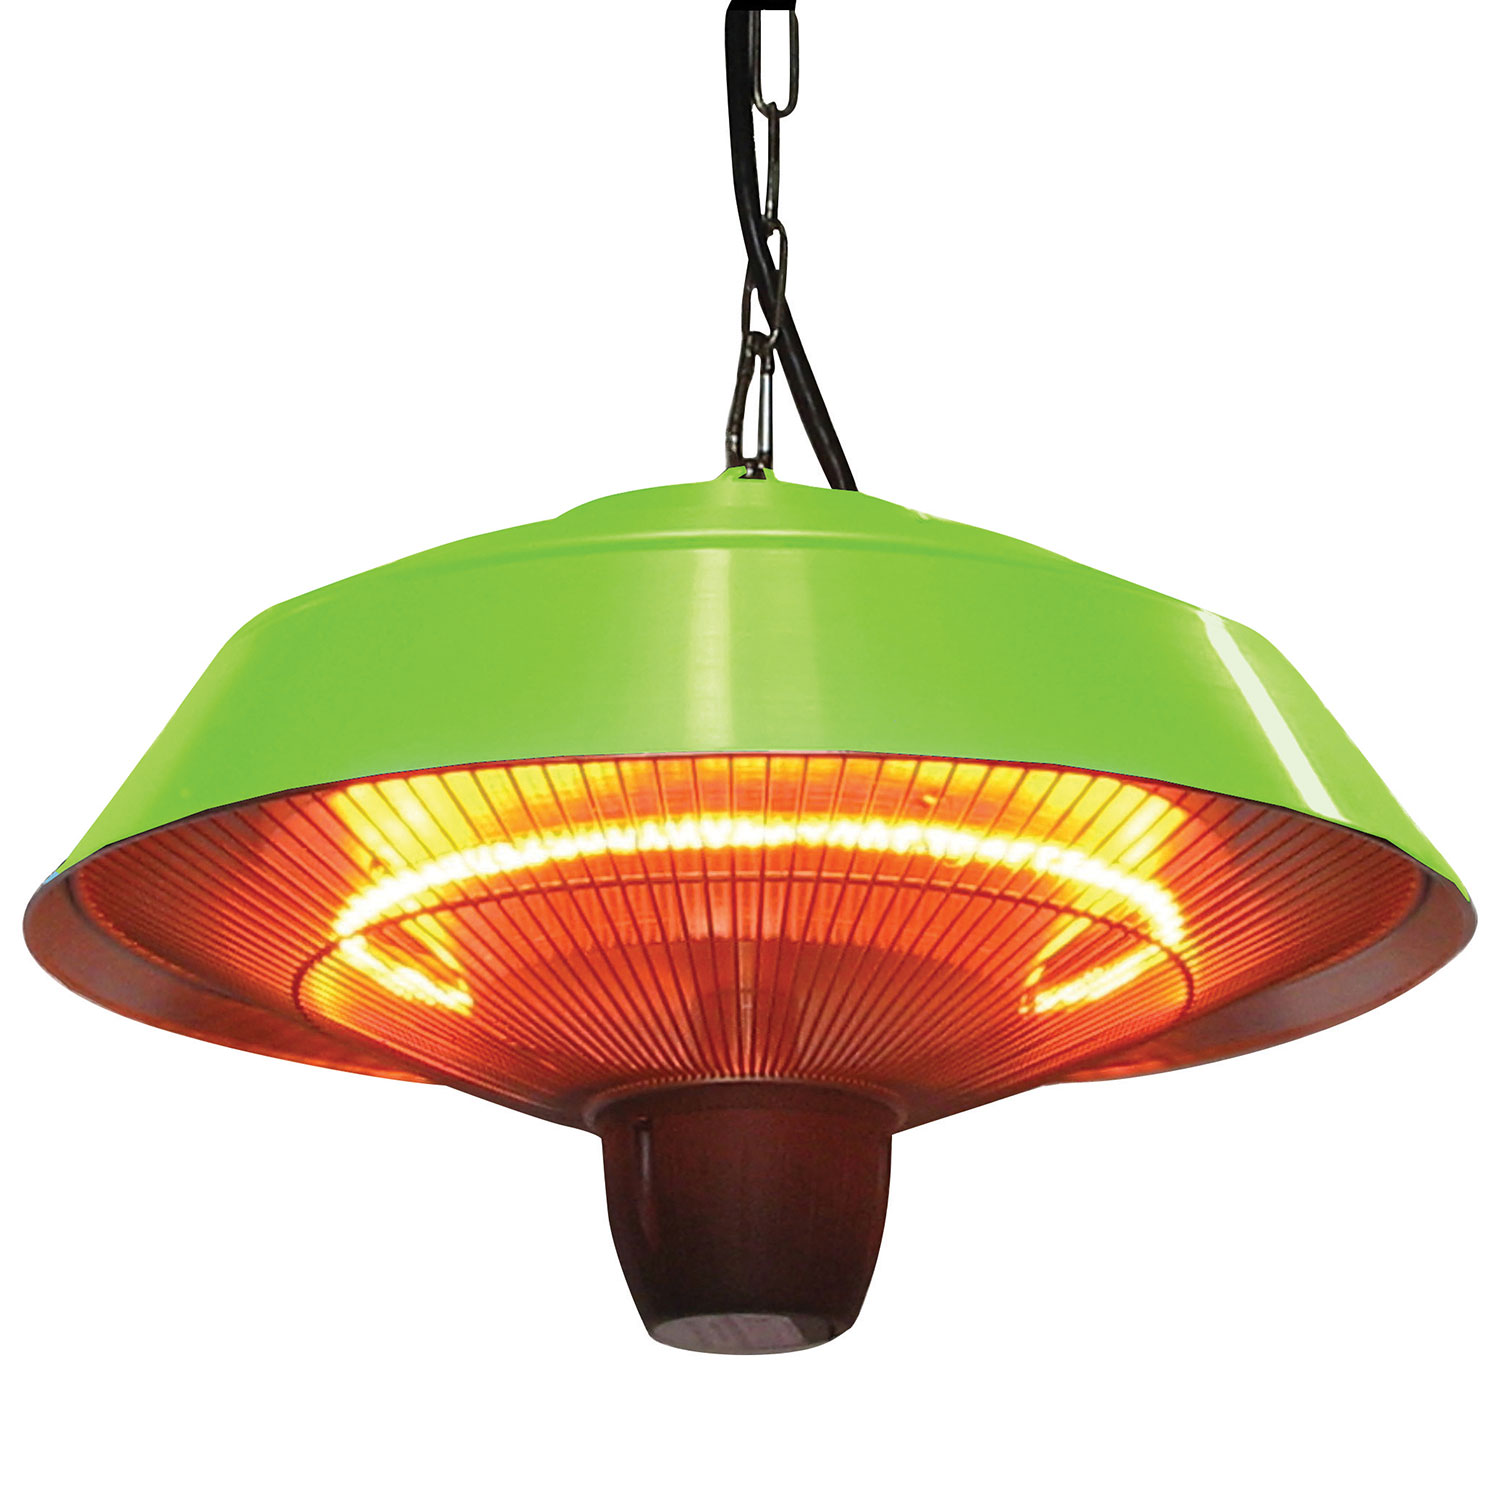 EnerG+ Hanging Radiant Infrared Electric Patio Heater   5100 BTU : Patio  Heaters   Best Buy Canada